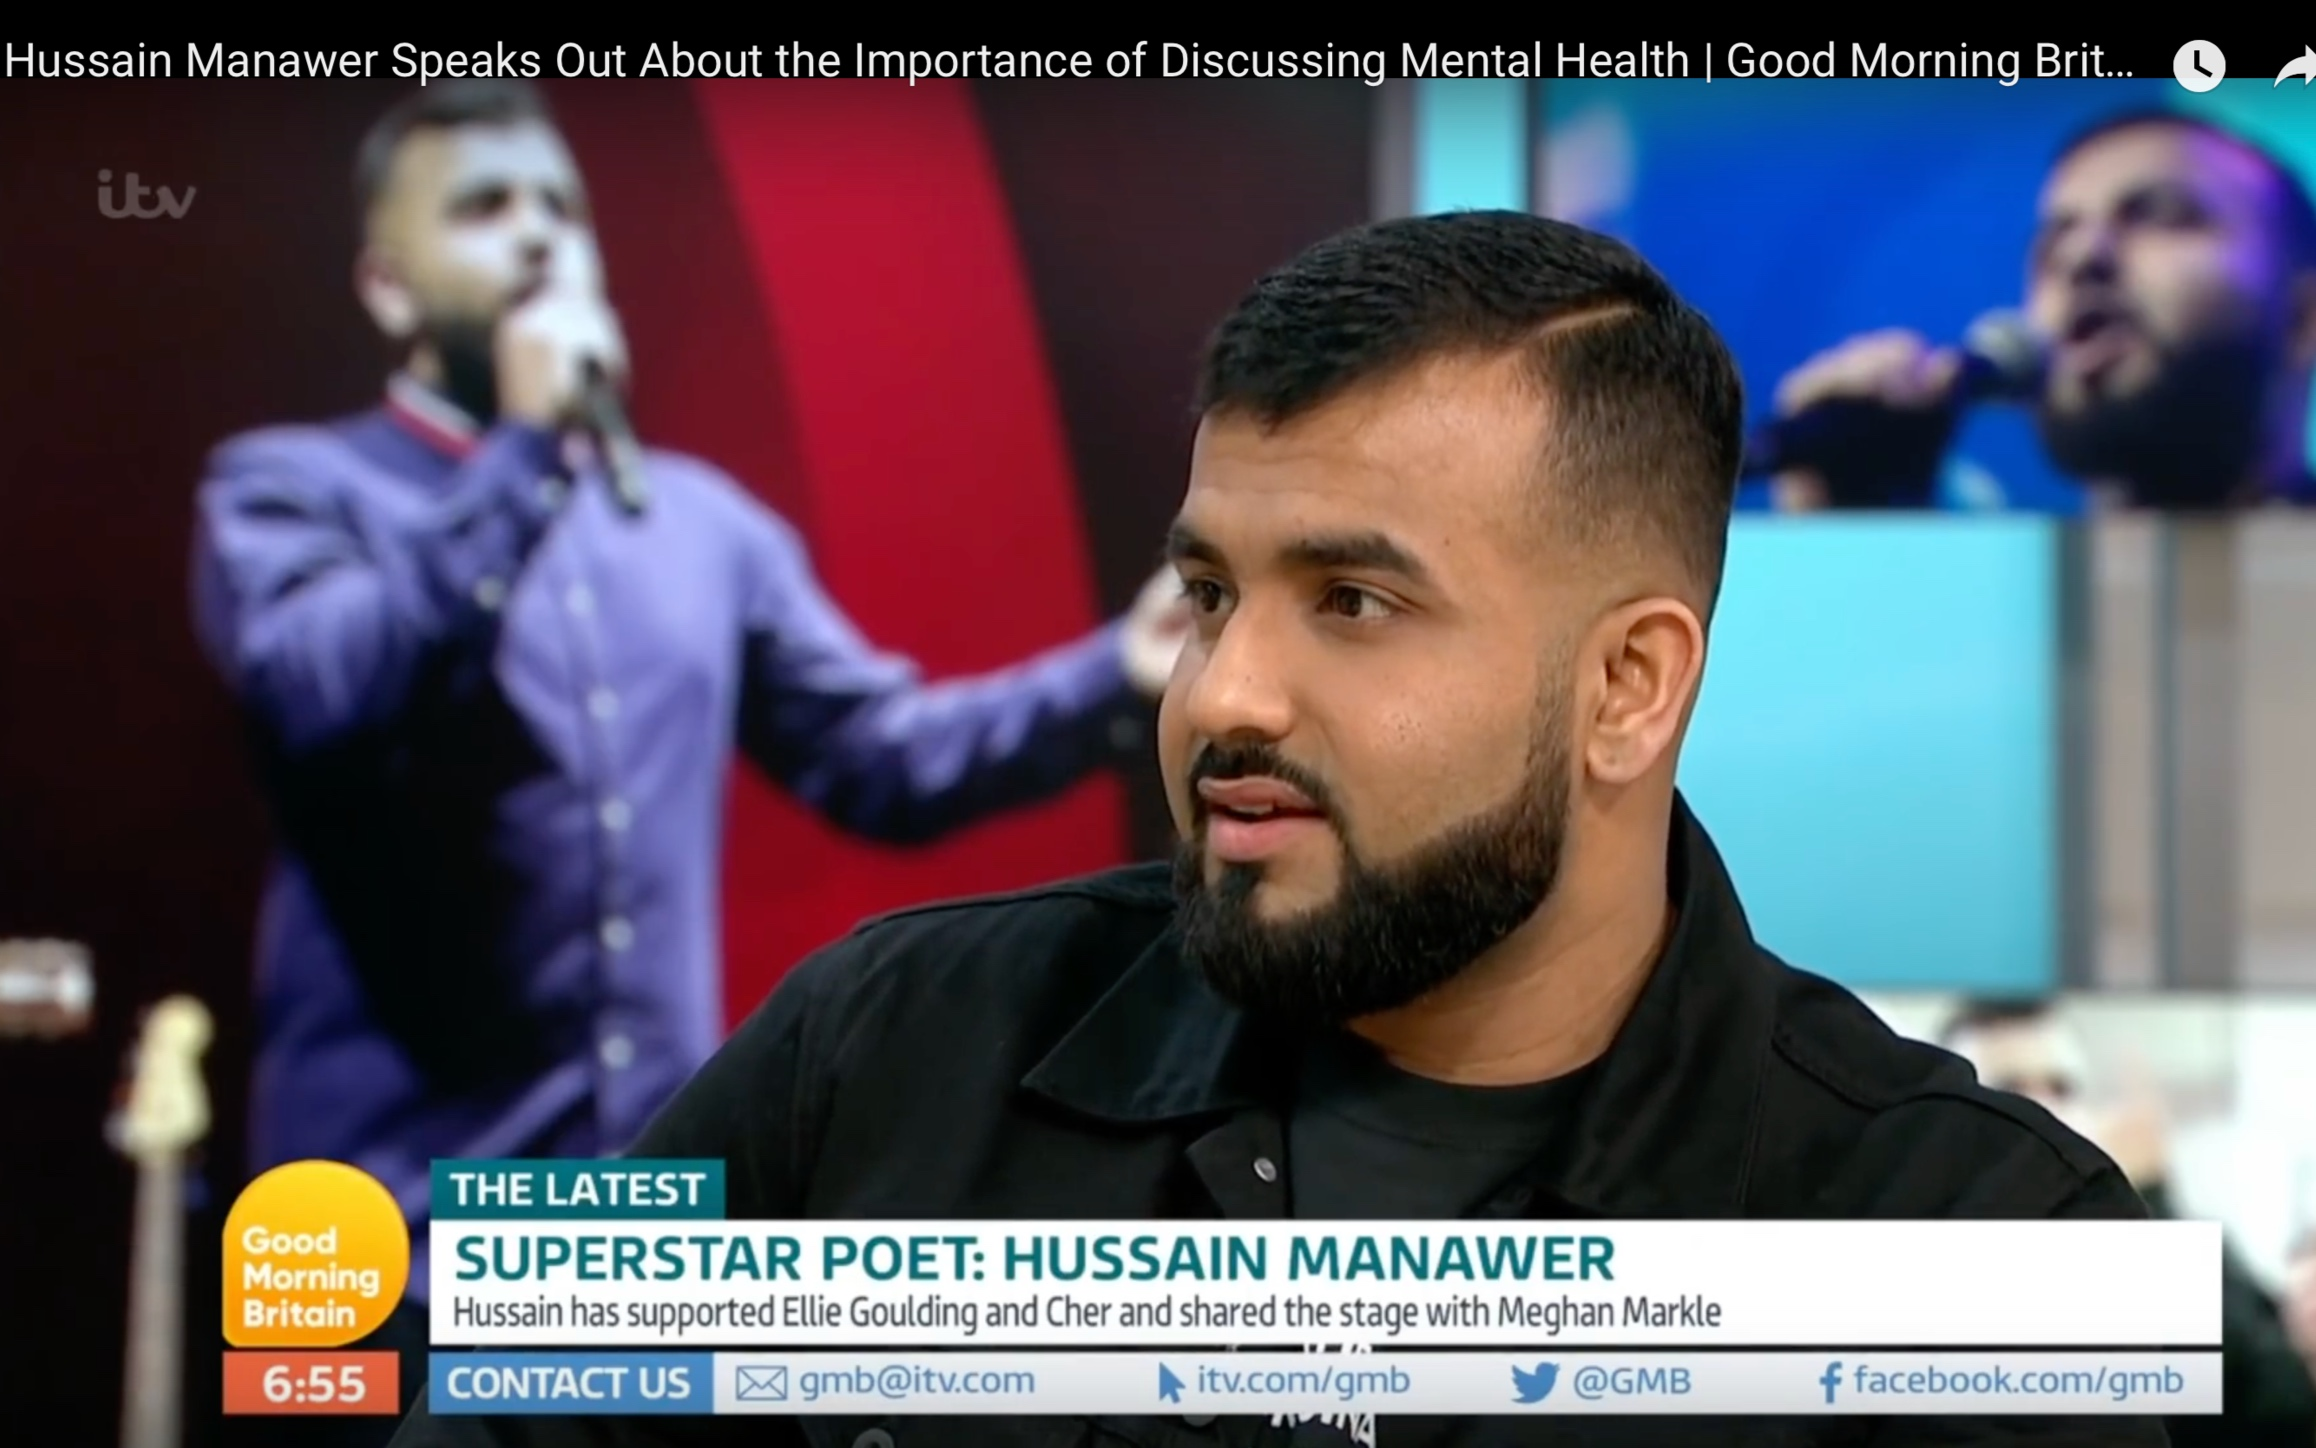 Good Morning Britain - Joining Ben Shepherd and Kate Garraway, Hussain breaks down the importance of discussing mental health, the impact of bereavement after the loss of his mother and all things poetry.